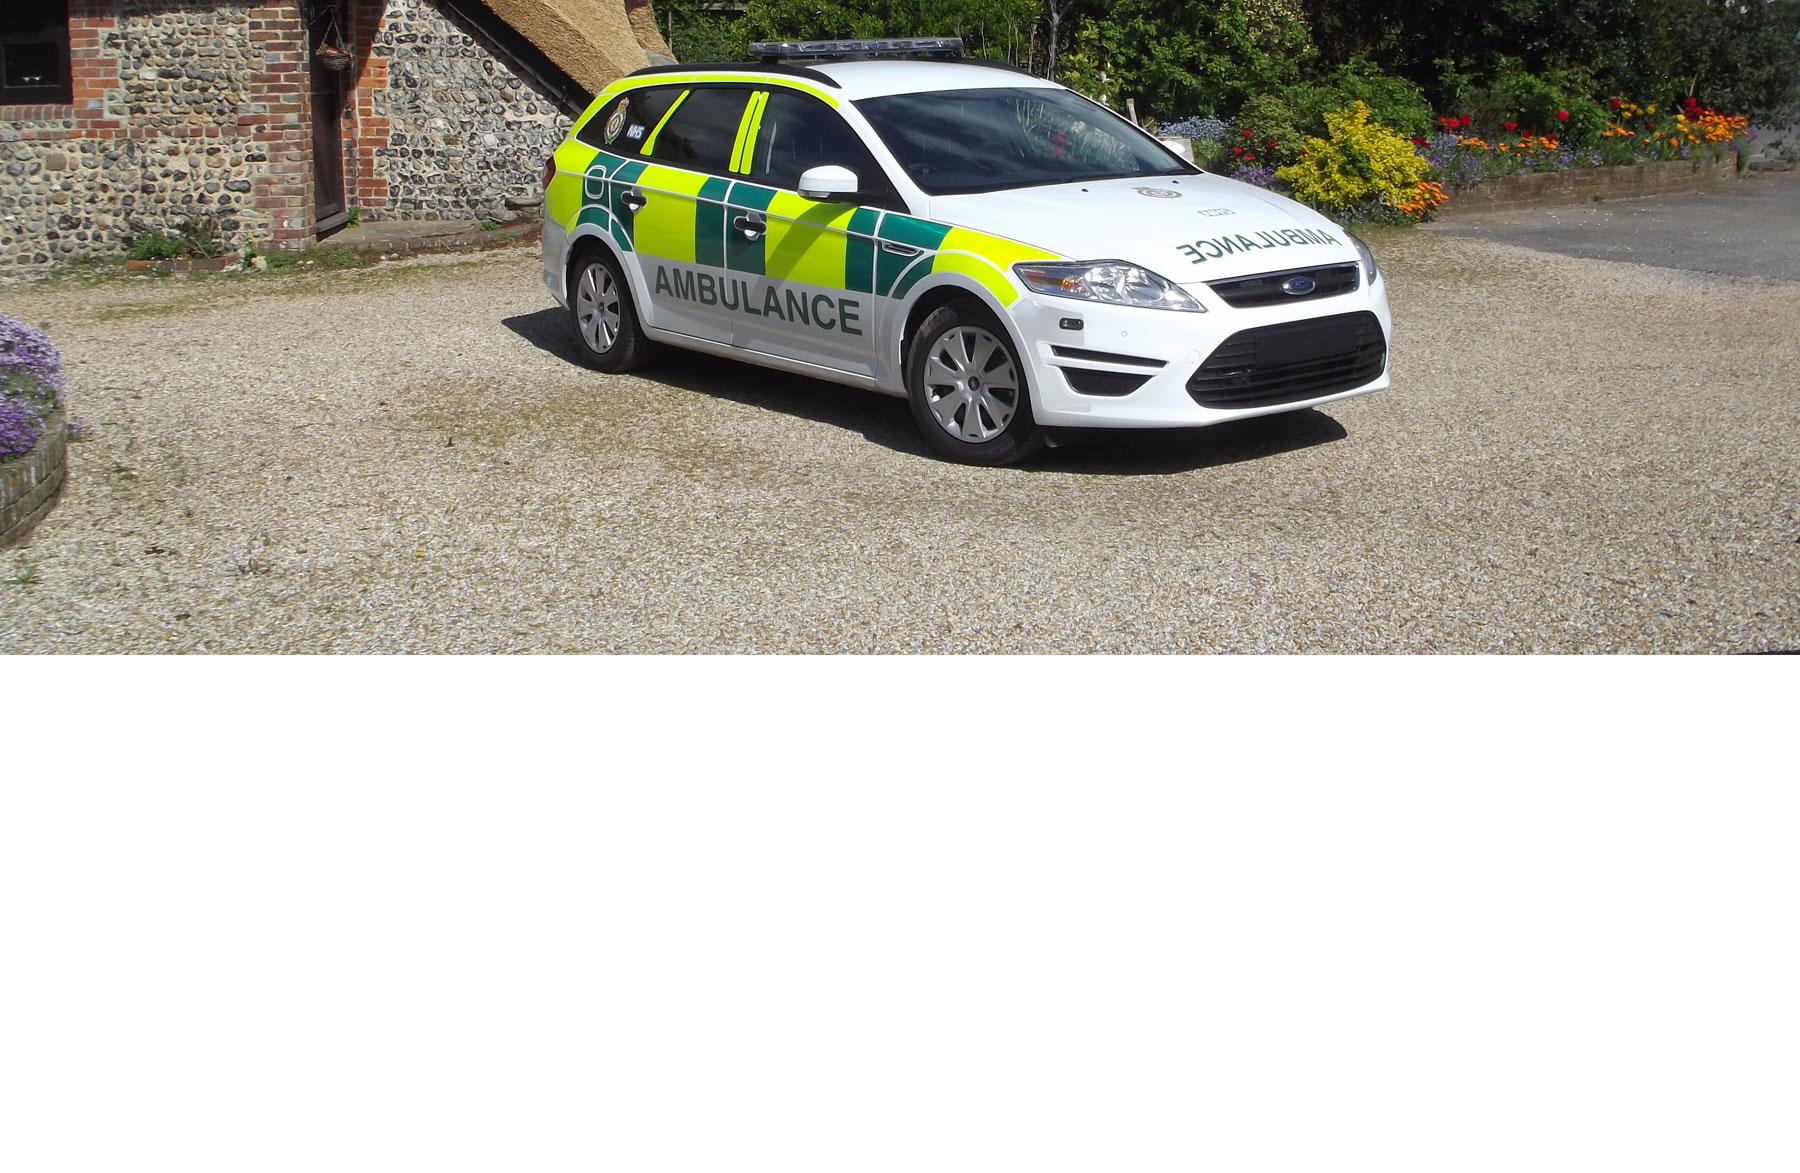 Ambulance Background Image